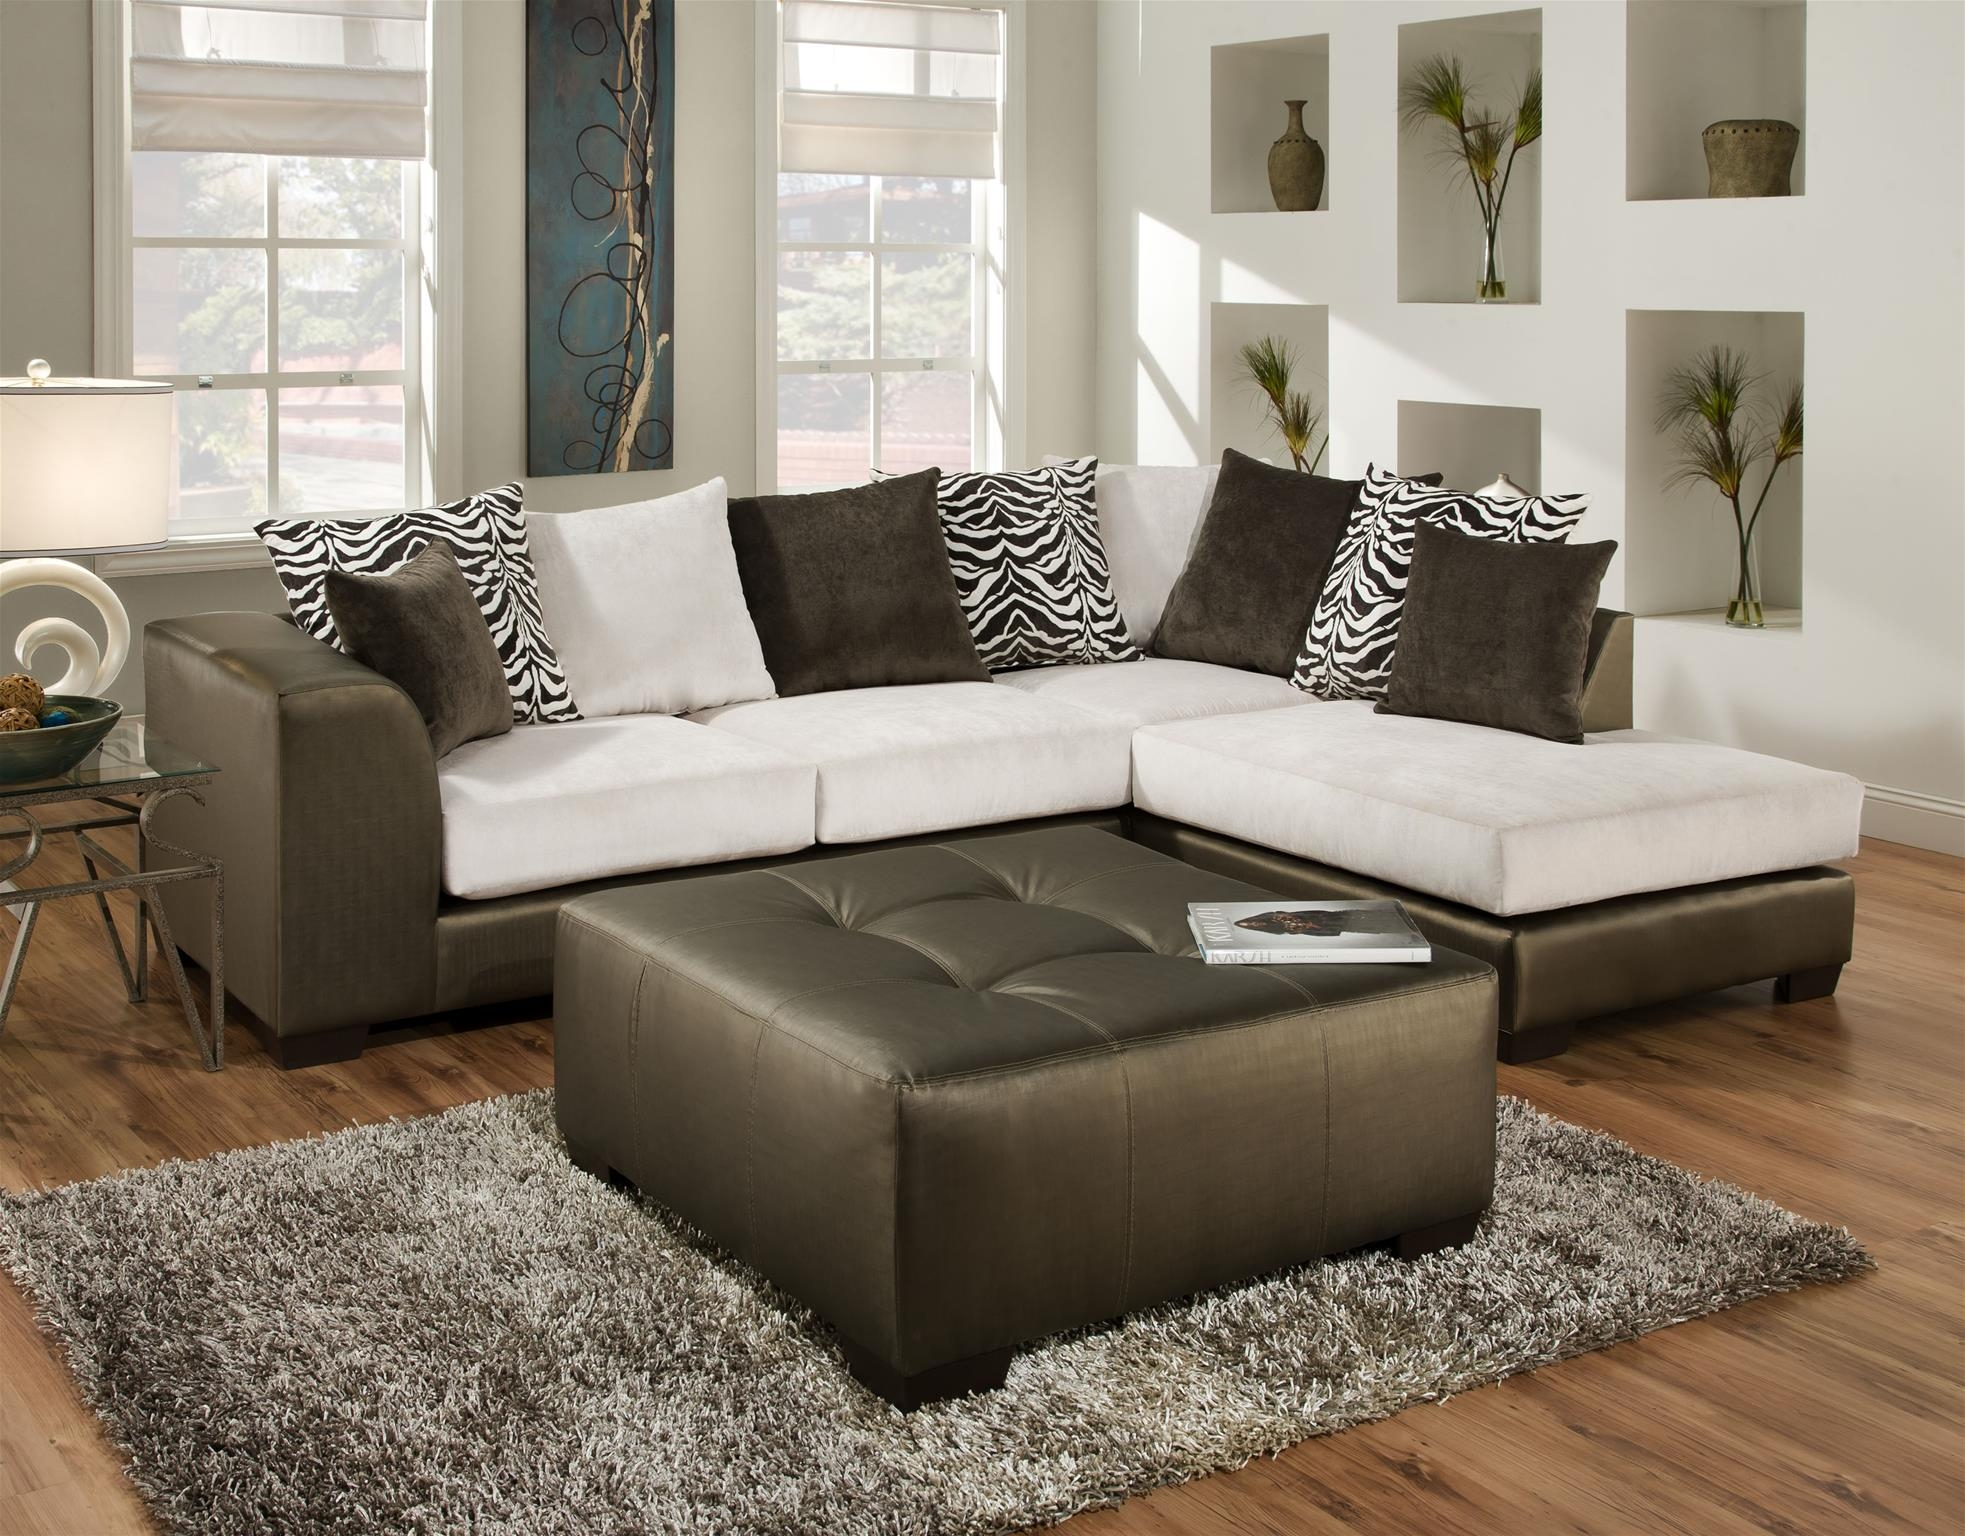 New Sectional Sofas T&a 14 In 10 Foot Sectional Sofa With Intended For 10 Foot Sectional : new sectional sofa - Sectionals, Sofas & Couches